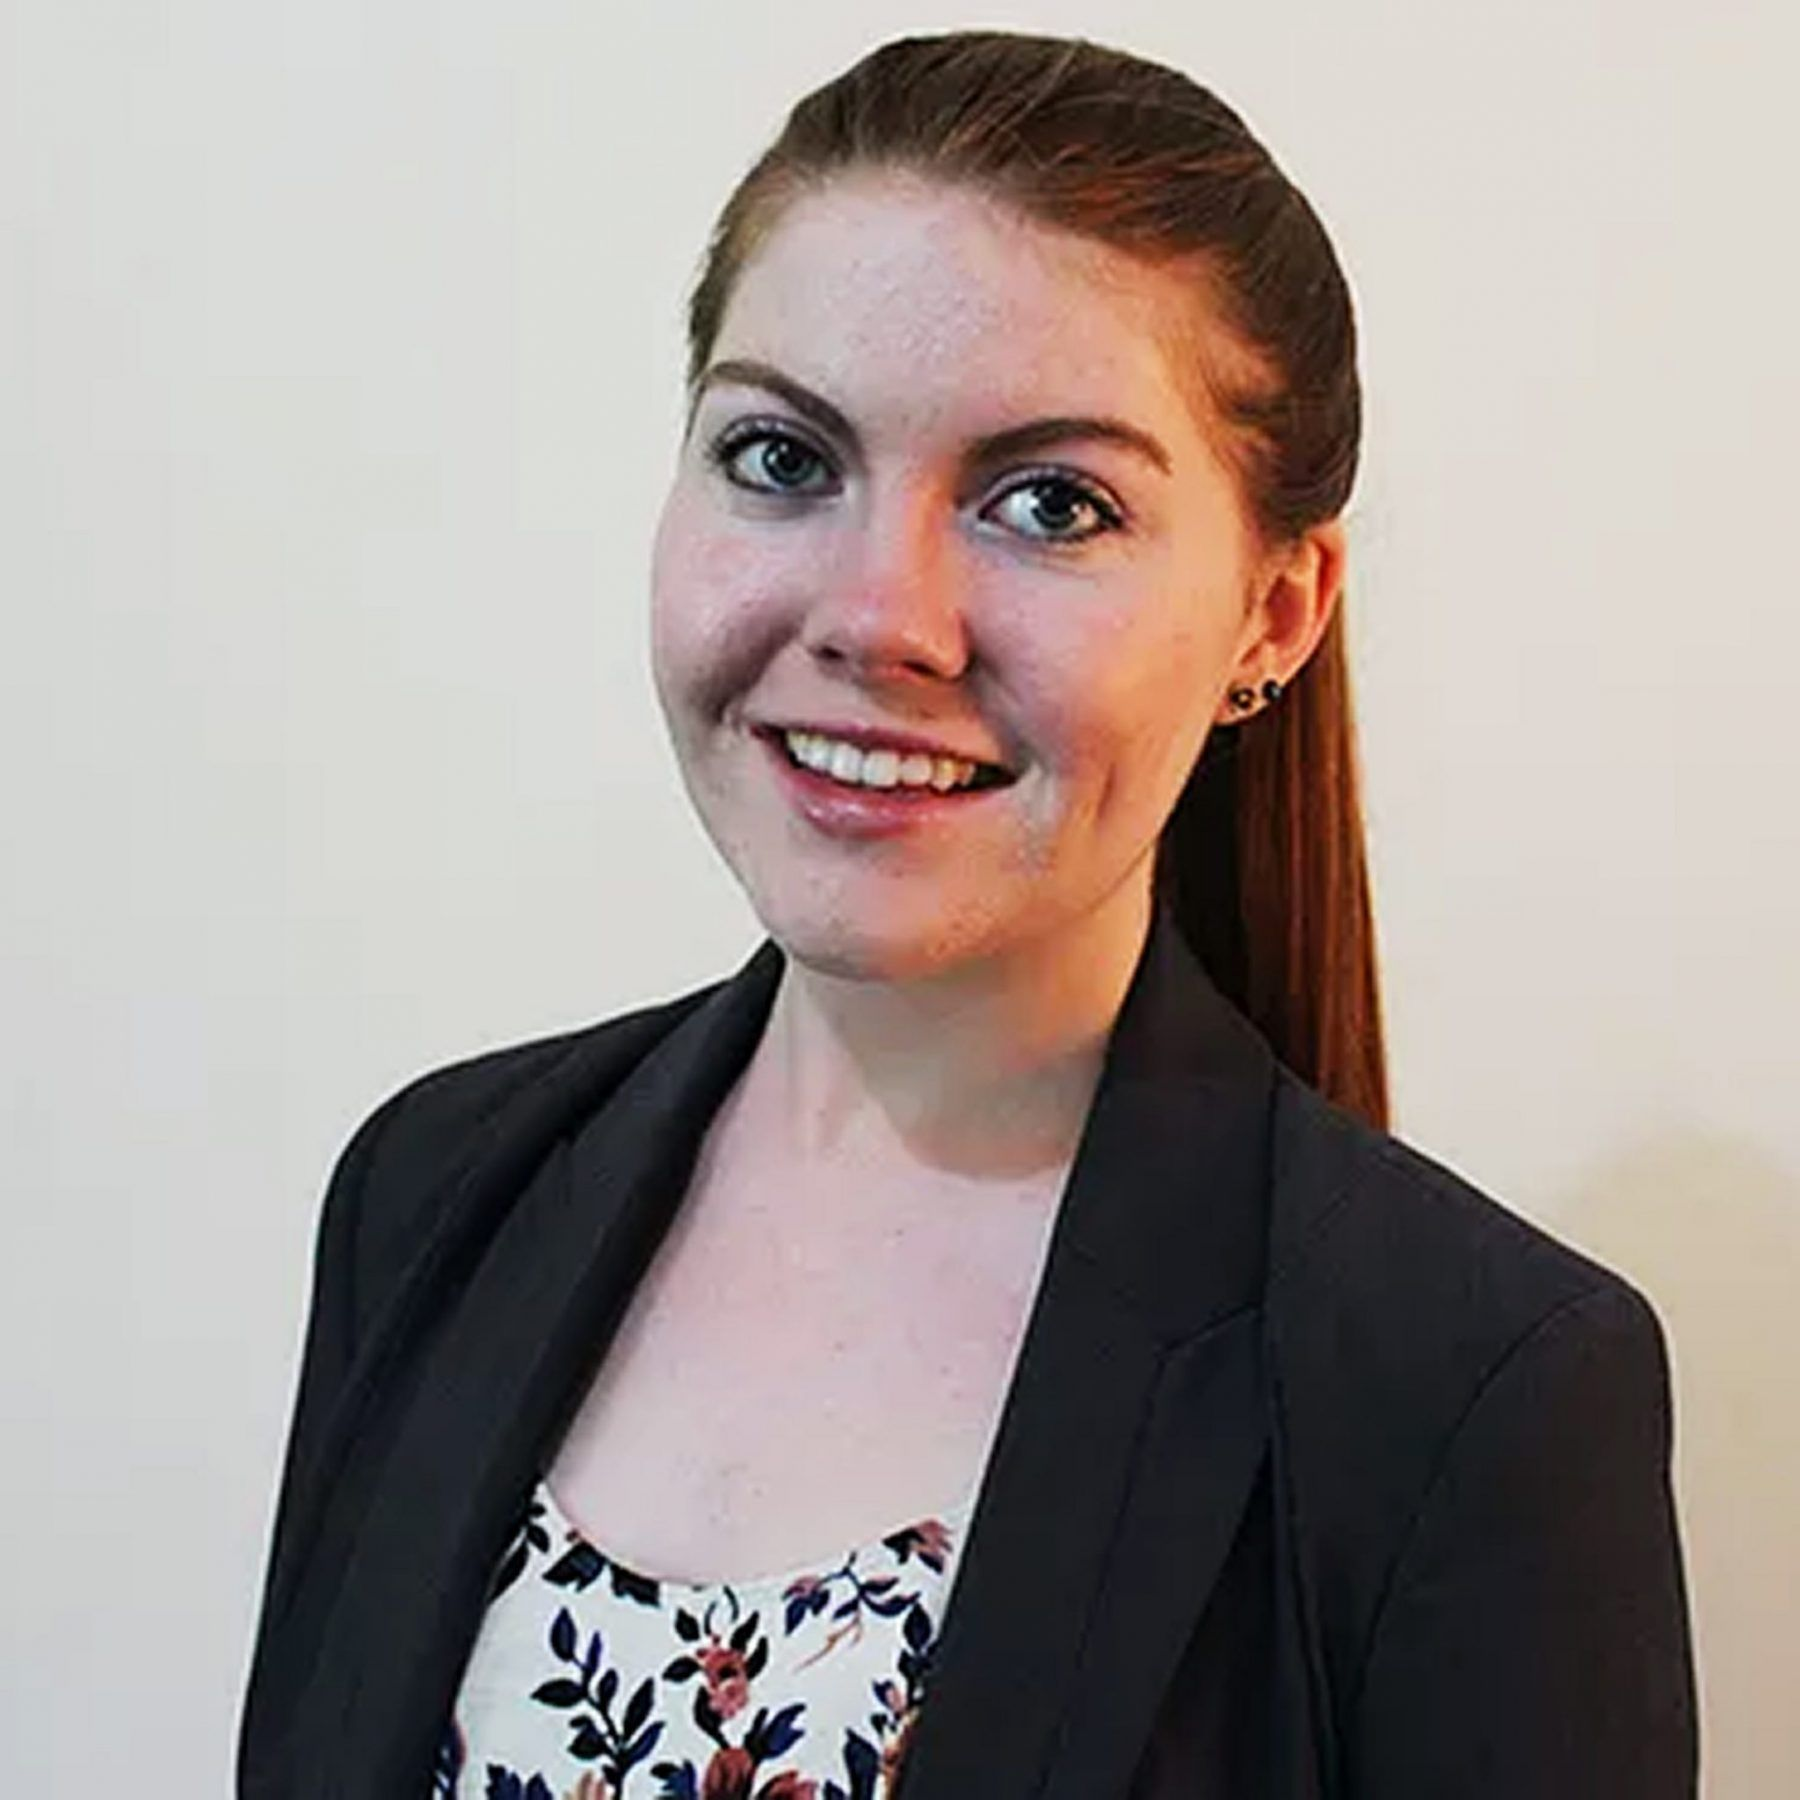 Bonnie O'Sullivan, Marketing Coordinator